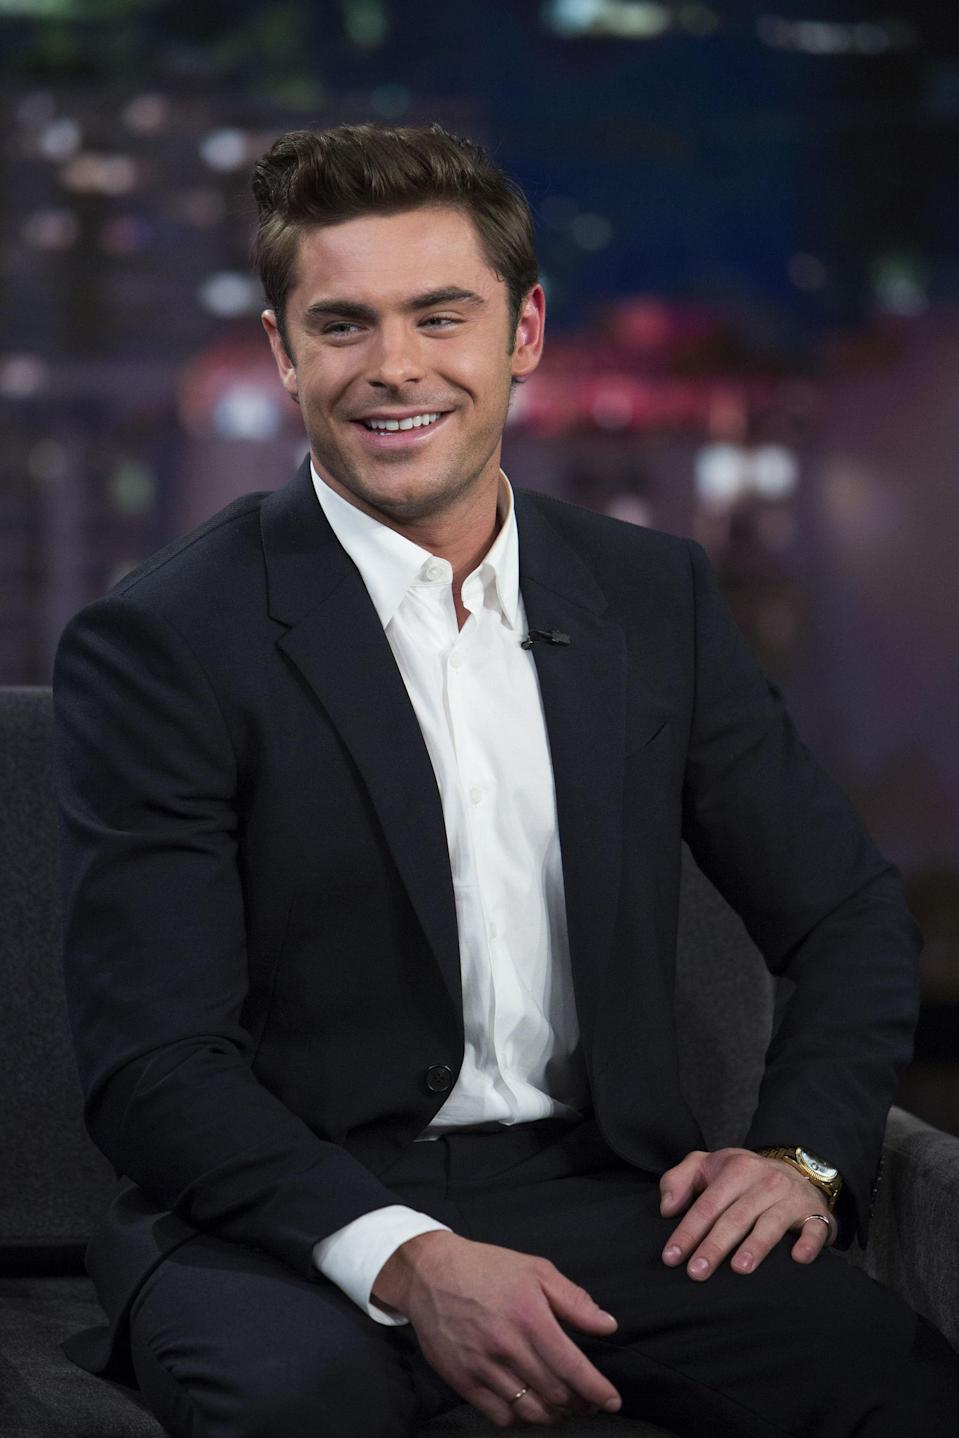 """<p>Efron had to get in <em>seriously</em><span> good shape for the upcoming movie<em> Baywatch</em>, so of course he had a strict workout routine and diet. You can imagine his excitement when he <a href=""""https://twitter.com/ZacEfron/status/707442604481355778"""" rel=""""nofollow noopener"""" target=""""_blank"""" data-ylk=""""slk:Tweeted about his cheat day"""" class=""""link rapid-noclick-resp"""">Tweeted about his cheat day</a>: a steak, four sides of potatoes and veggies, mac and cheese, three desserts, bread and butter, a brick of cheese, and caviar. And no leftovers. </span></p>"""